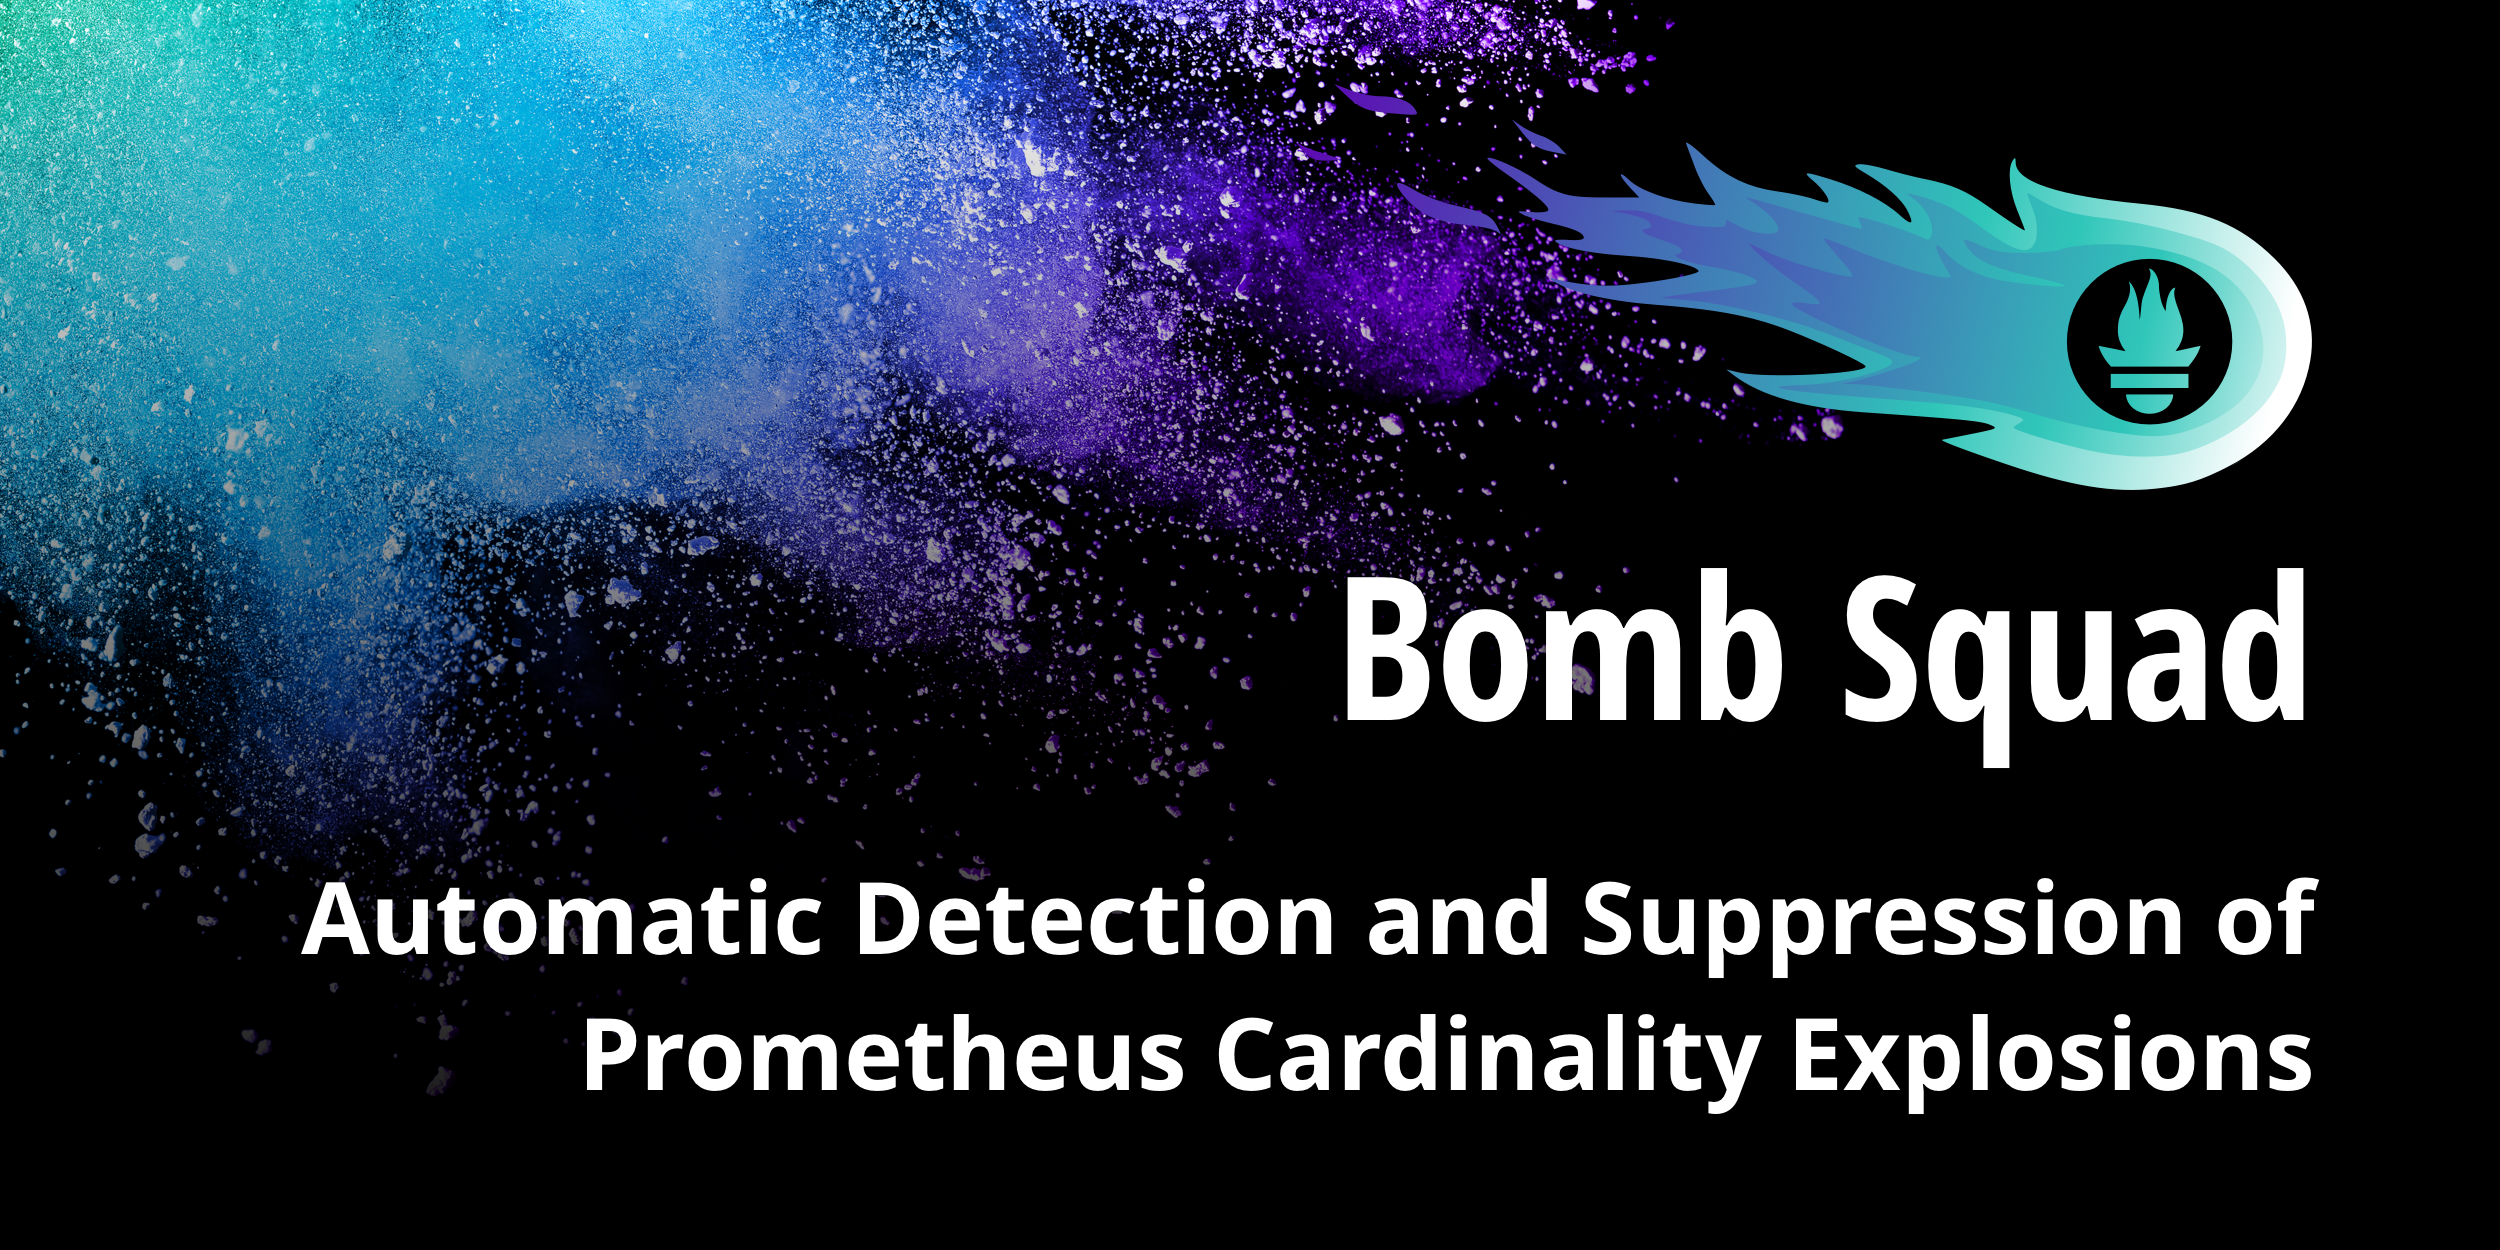 Bomb Squad: Automatic Detection and Suppression of